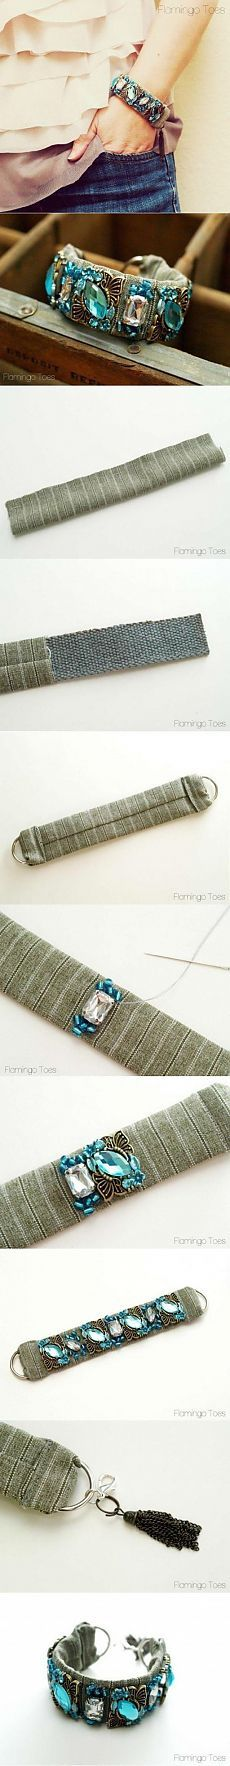 Handmade Jewelry Anthro Knockoff Fori Bracelet - tutorial Anthro Knockoff Fori Bracelet - Multiple Strands and Silver Heart Bracelet Turquoise Lariat Fabric Jewelry, Beaded Jewelry, Jewelry Bracelets, Handmade Jewelry, Couple Bracelets, Pearl Necklaces, Jewellery Box, Handmade Bracelets, Handmade Crafts